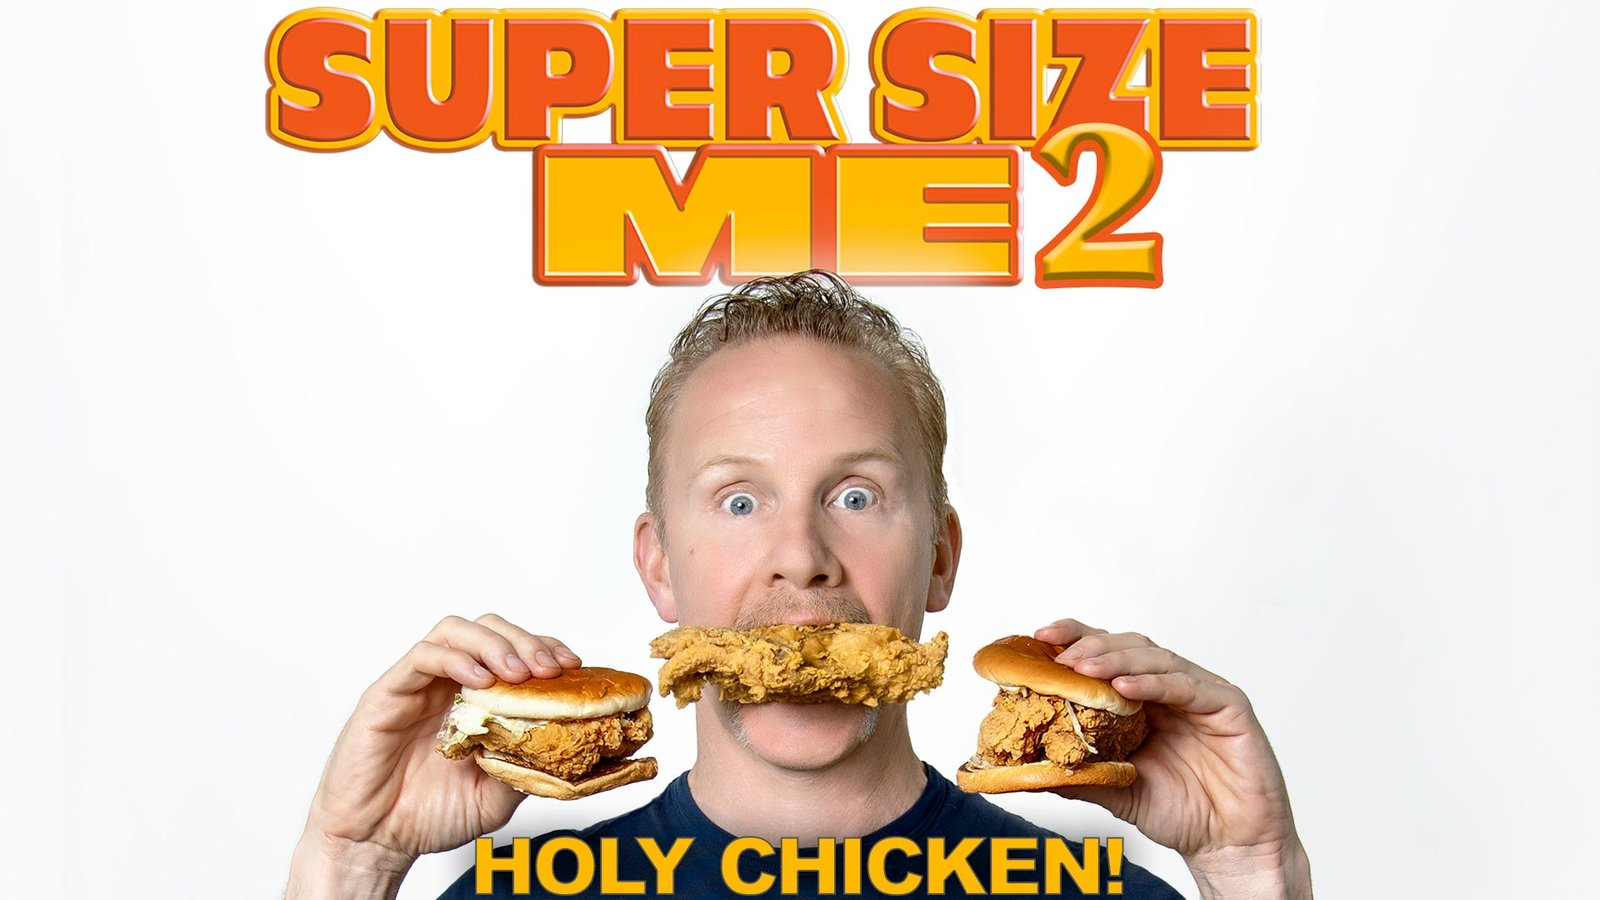 Super Size Me 2 Holy Chicken